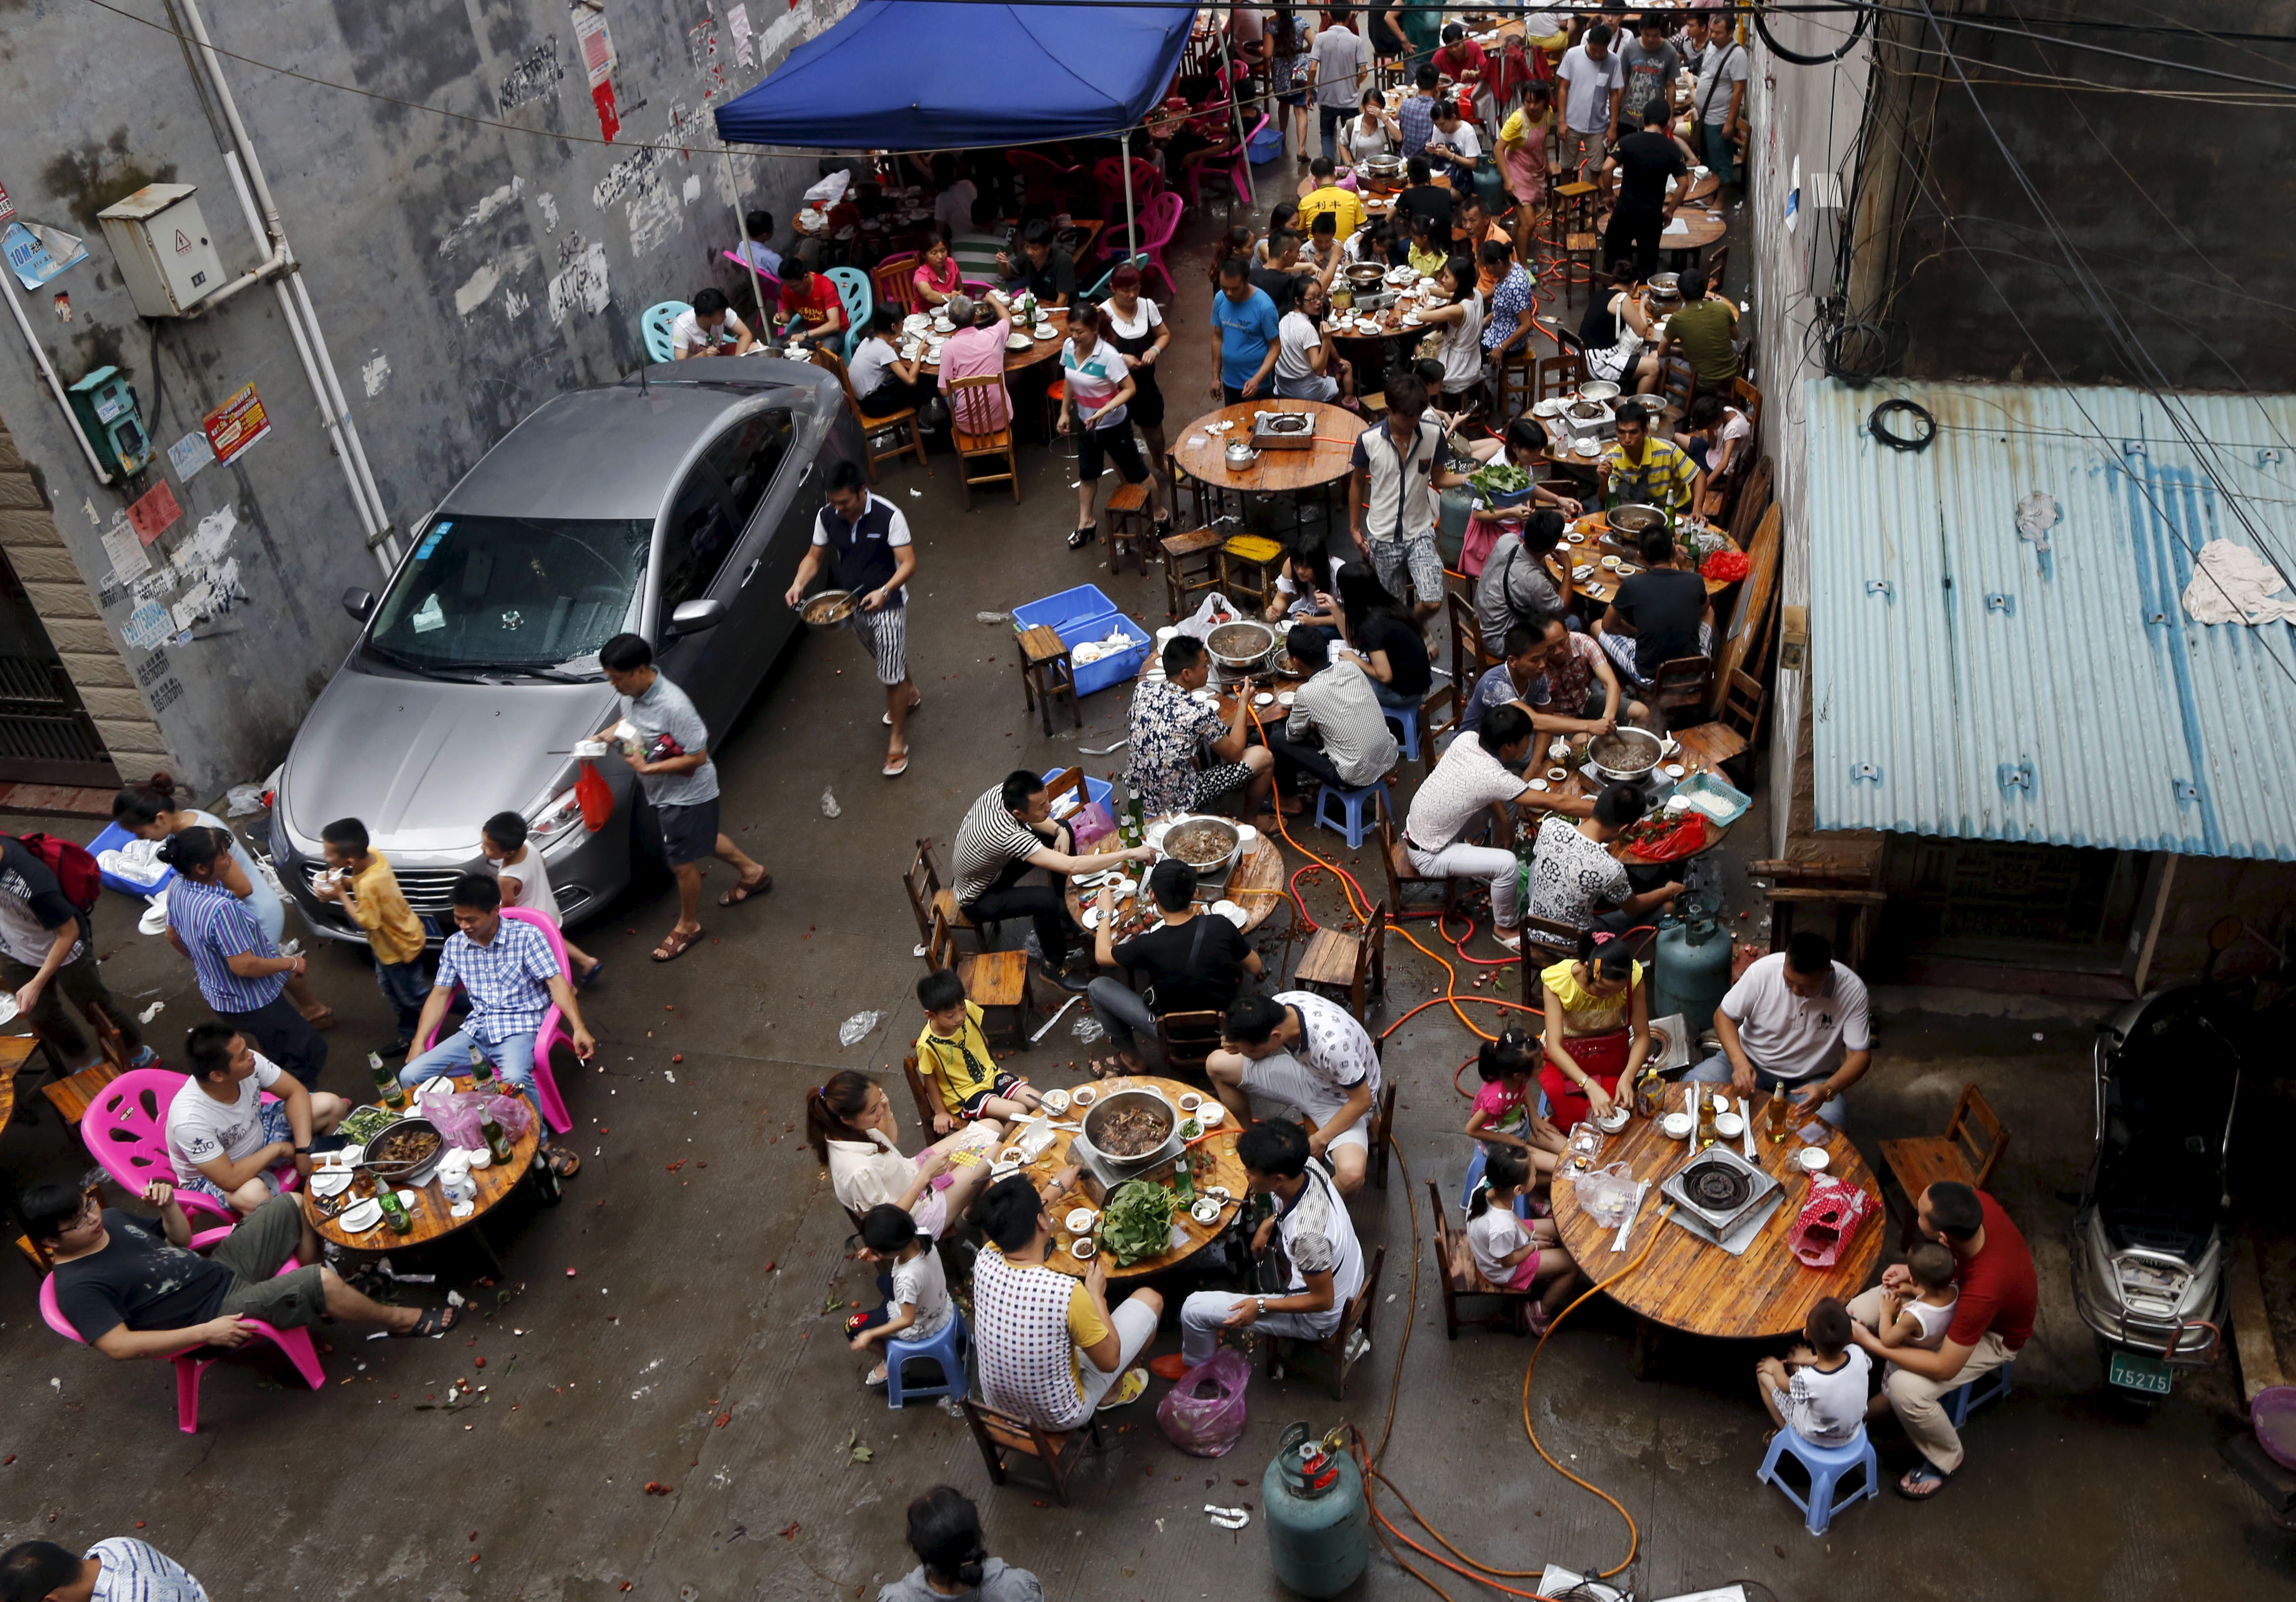 People eat dog meat at a dog-meat restaurant district during the Yulin Dog Meat Festival in the Chinese city of Yulin, Guangxi Zhuang Autonomous Region, on June 22, 2015